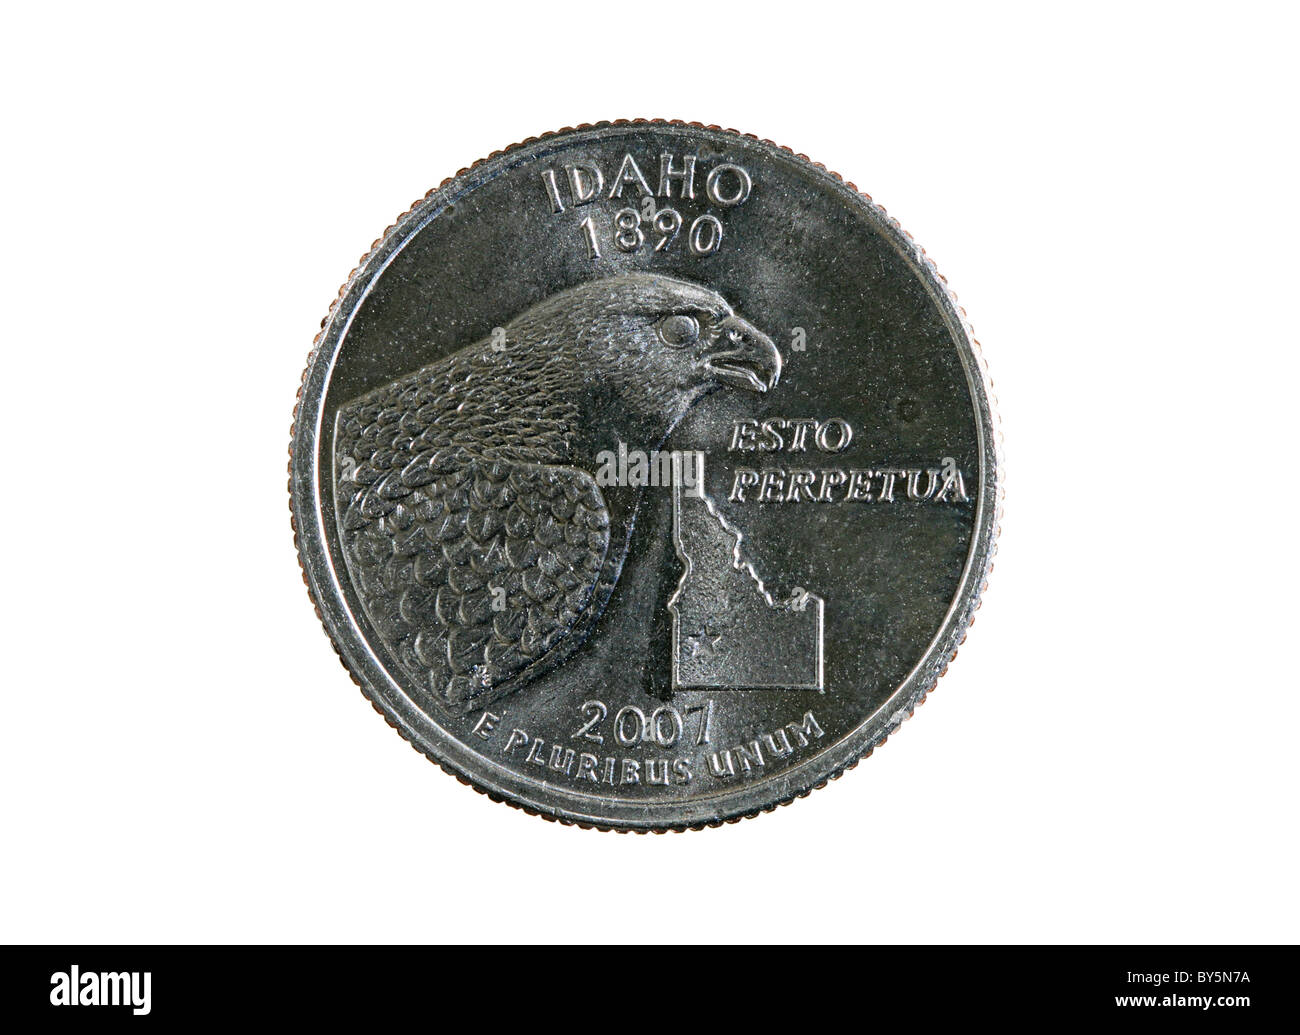 Idaho state quarter coin isolated on white background - Stock Image